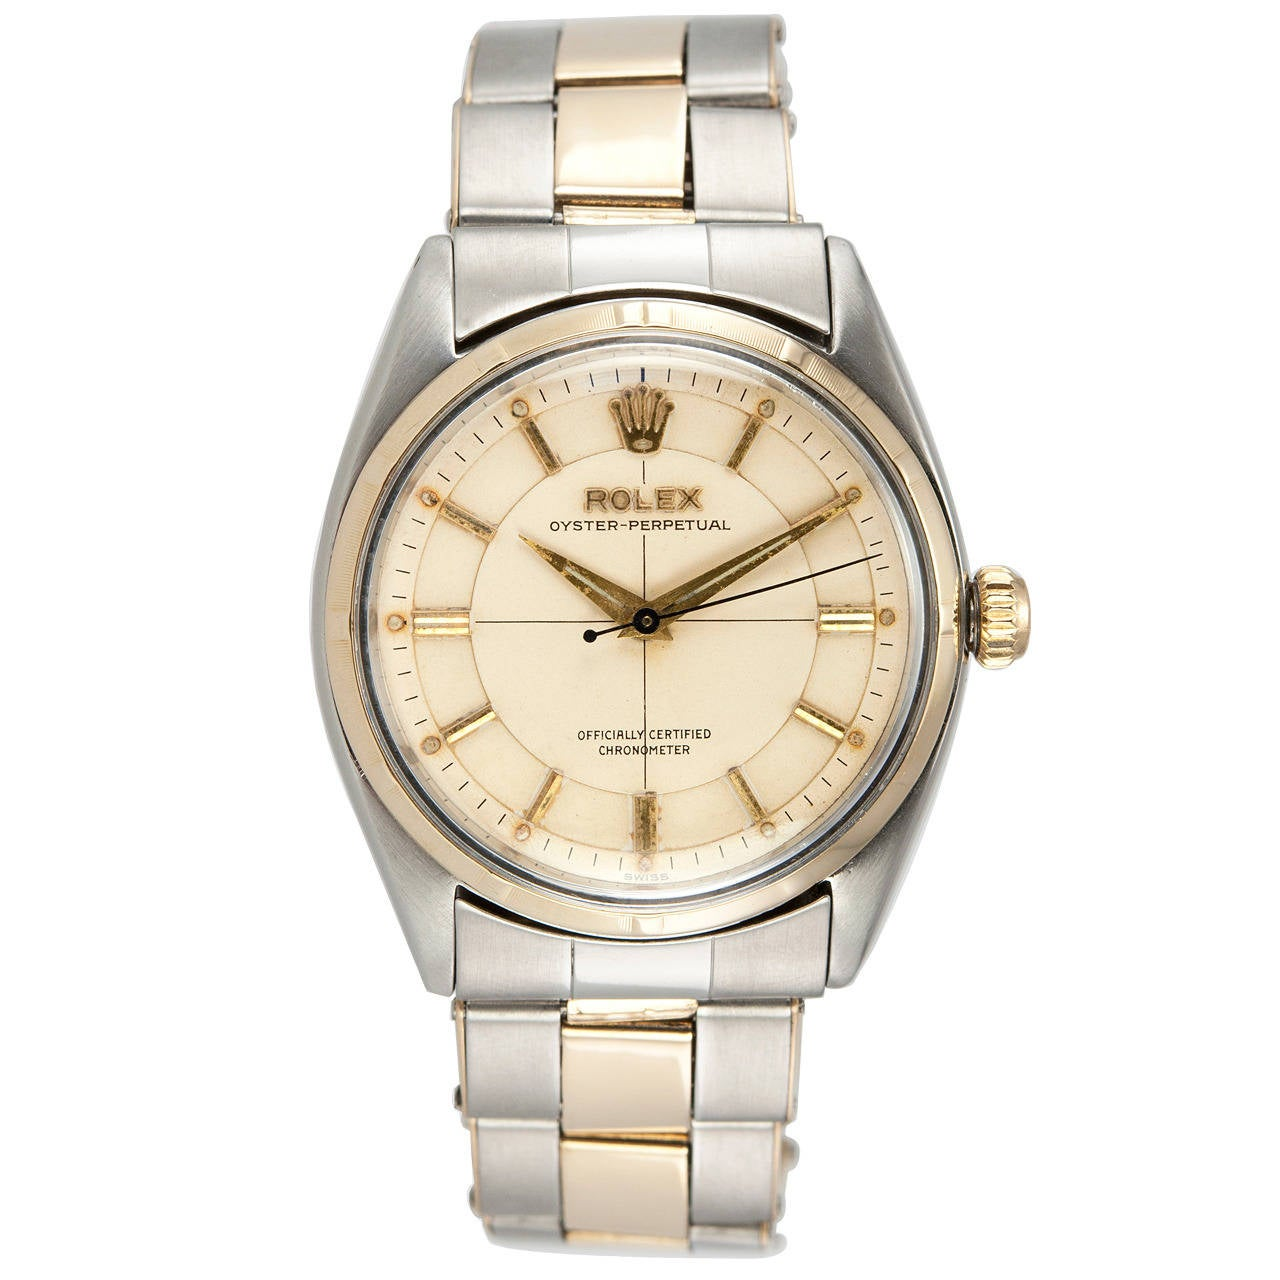 Rolex Yellow Gold Stainless Steel Oyster Perpetual Wristwatch Ref 6565 1